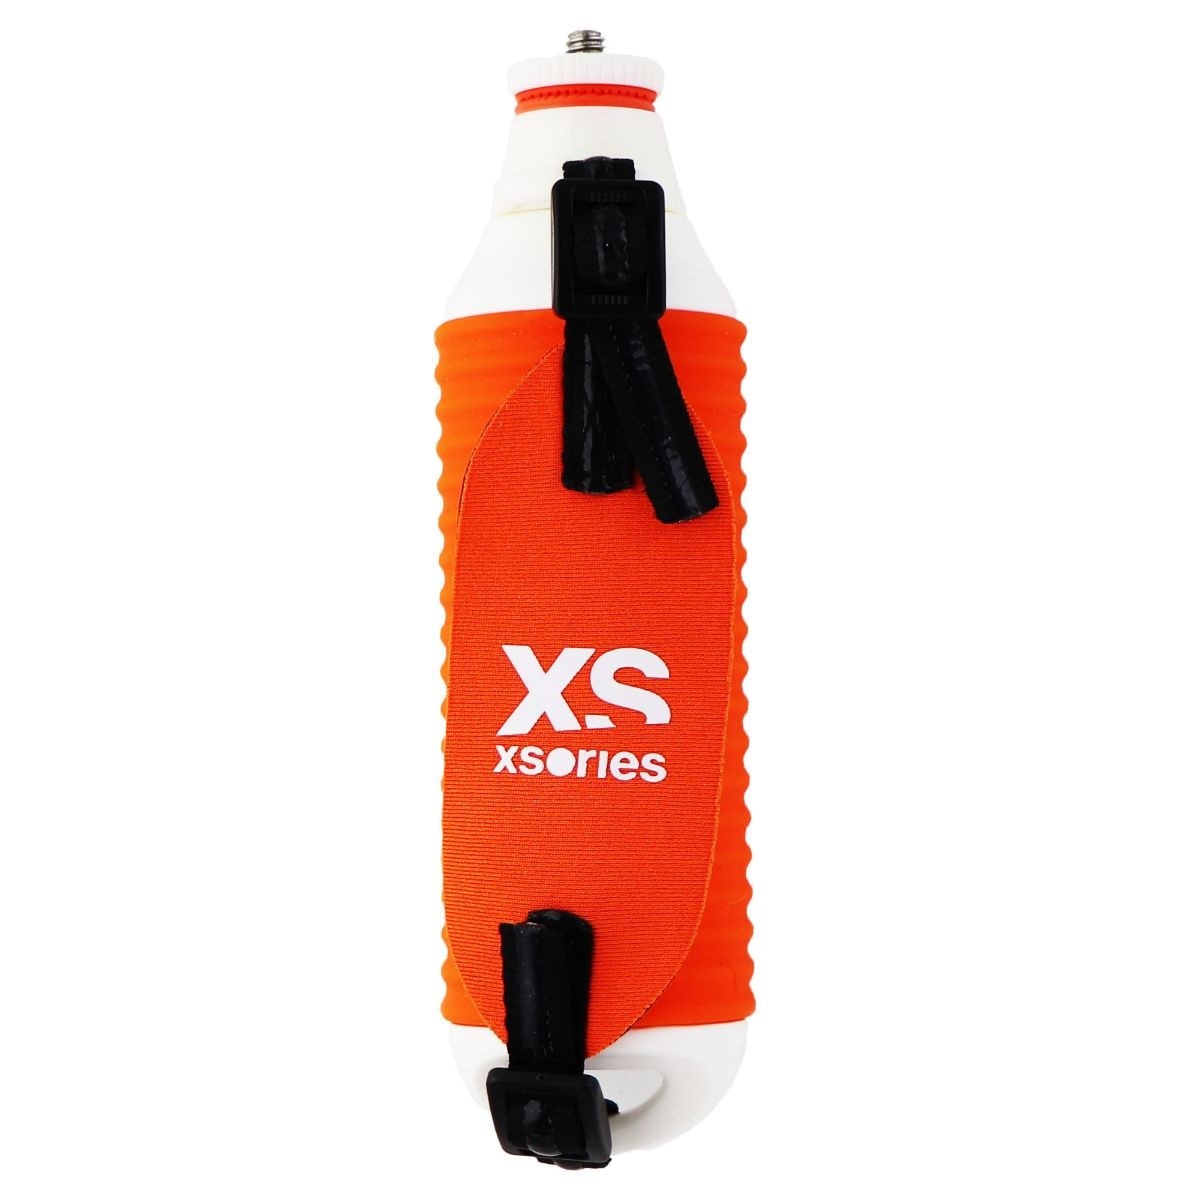 XSories U-Float Floatable Camera Grip w/ Strap and GoPro Tripod Adapter - Orange